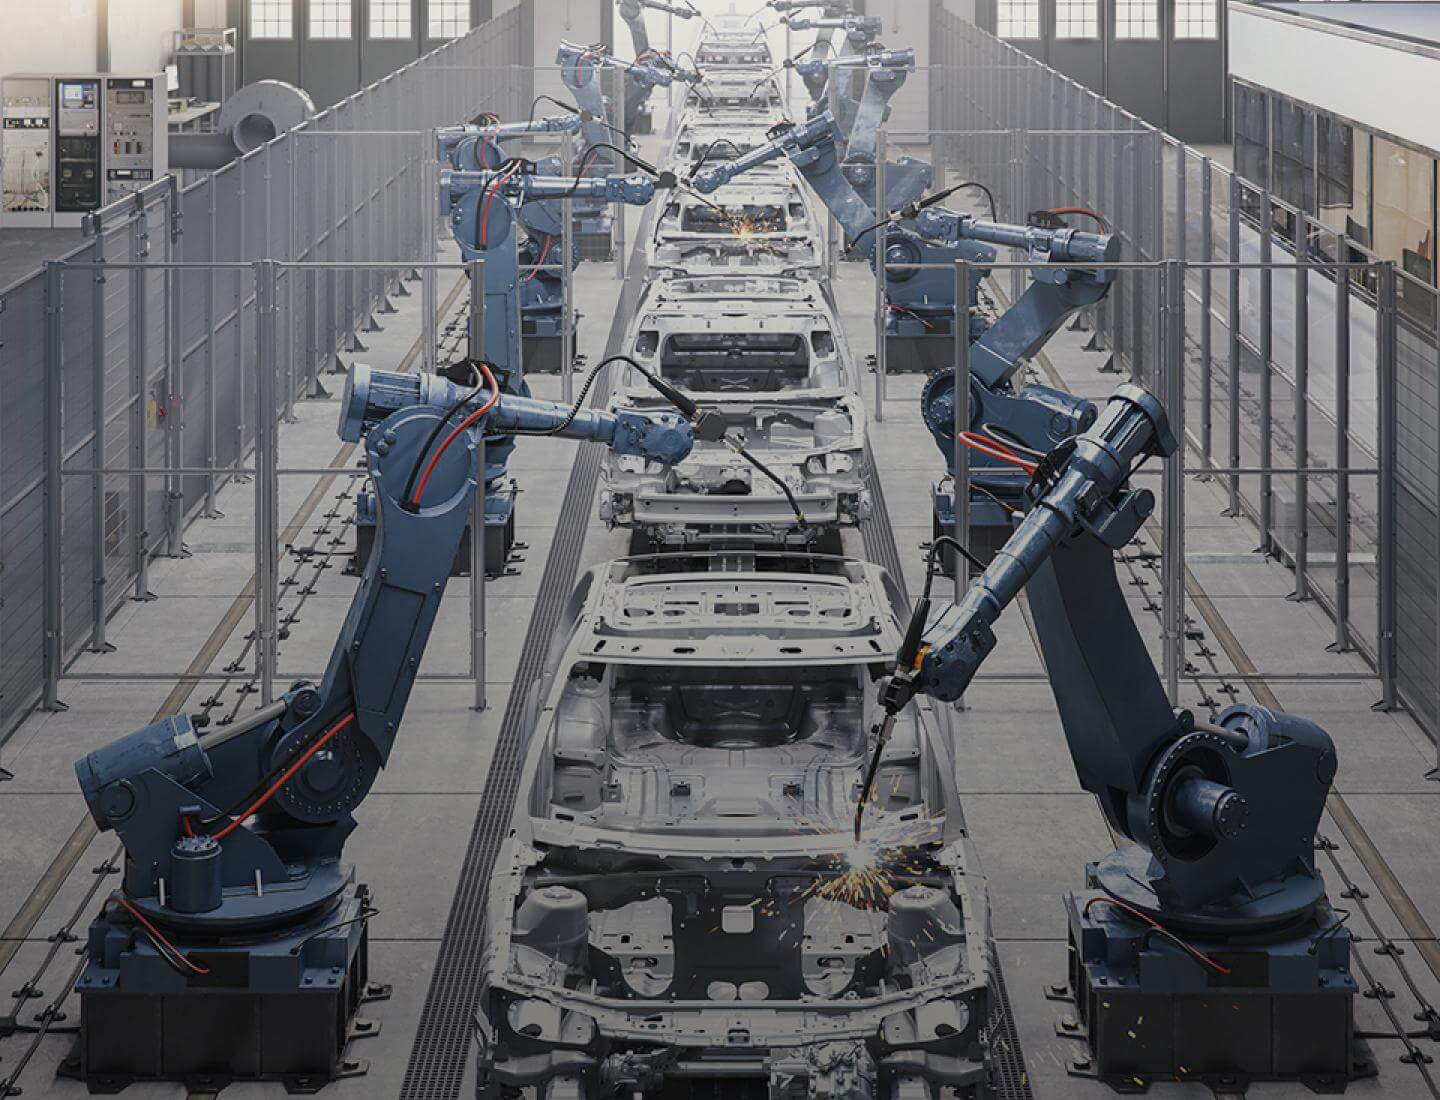 Troax machine guard at a production line with industrial robots.